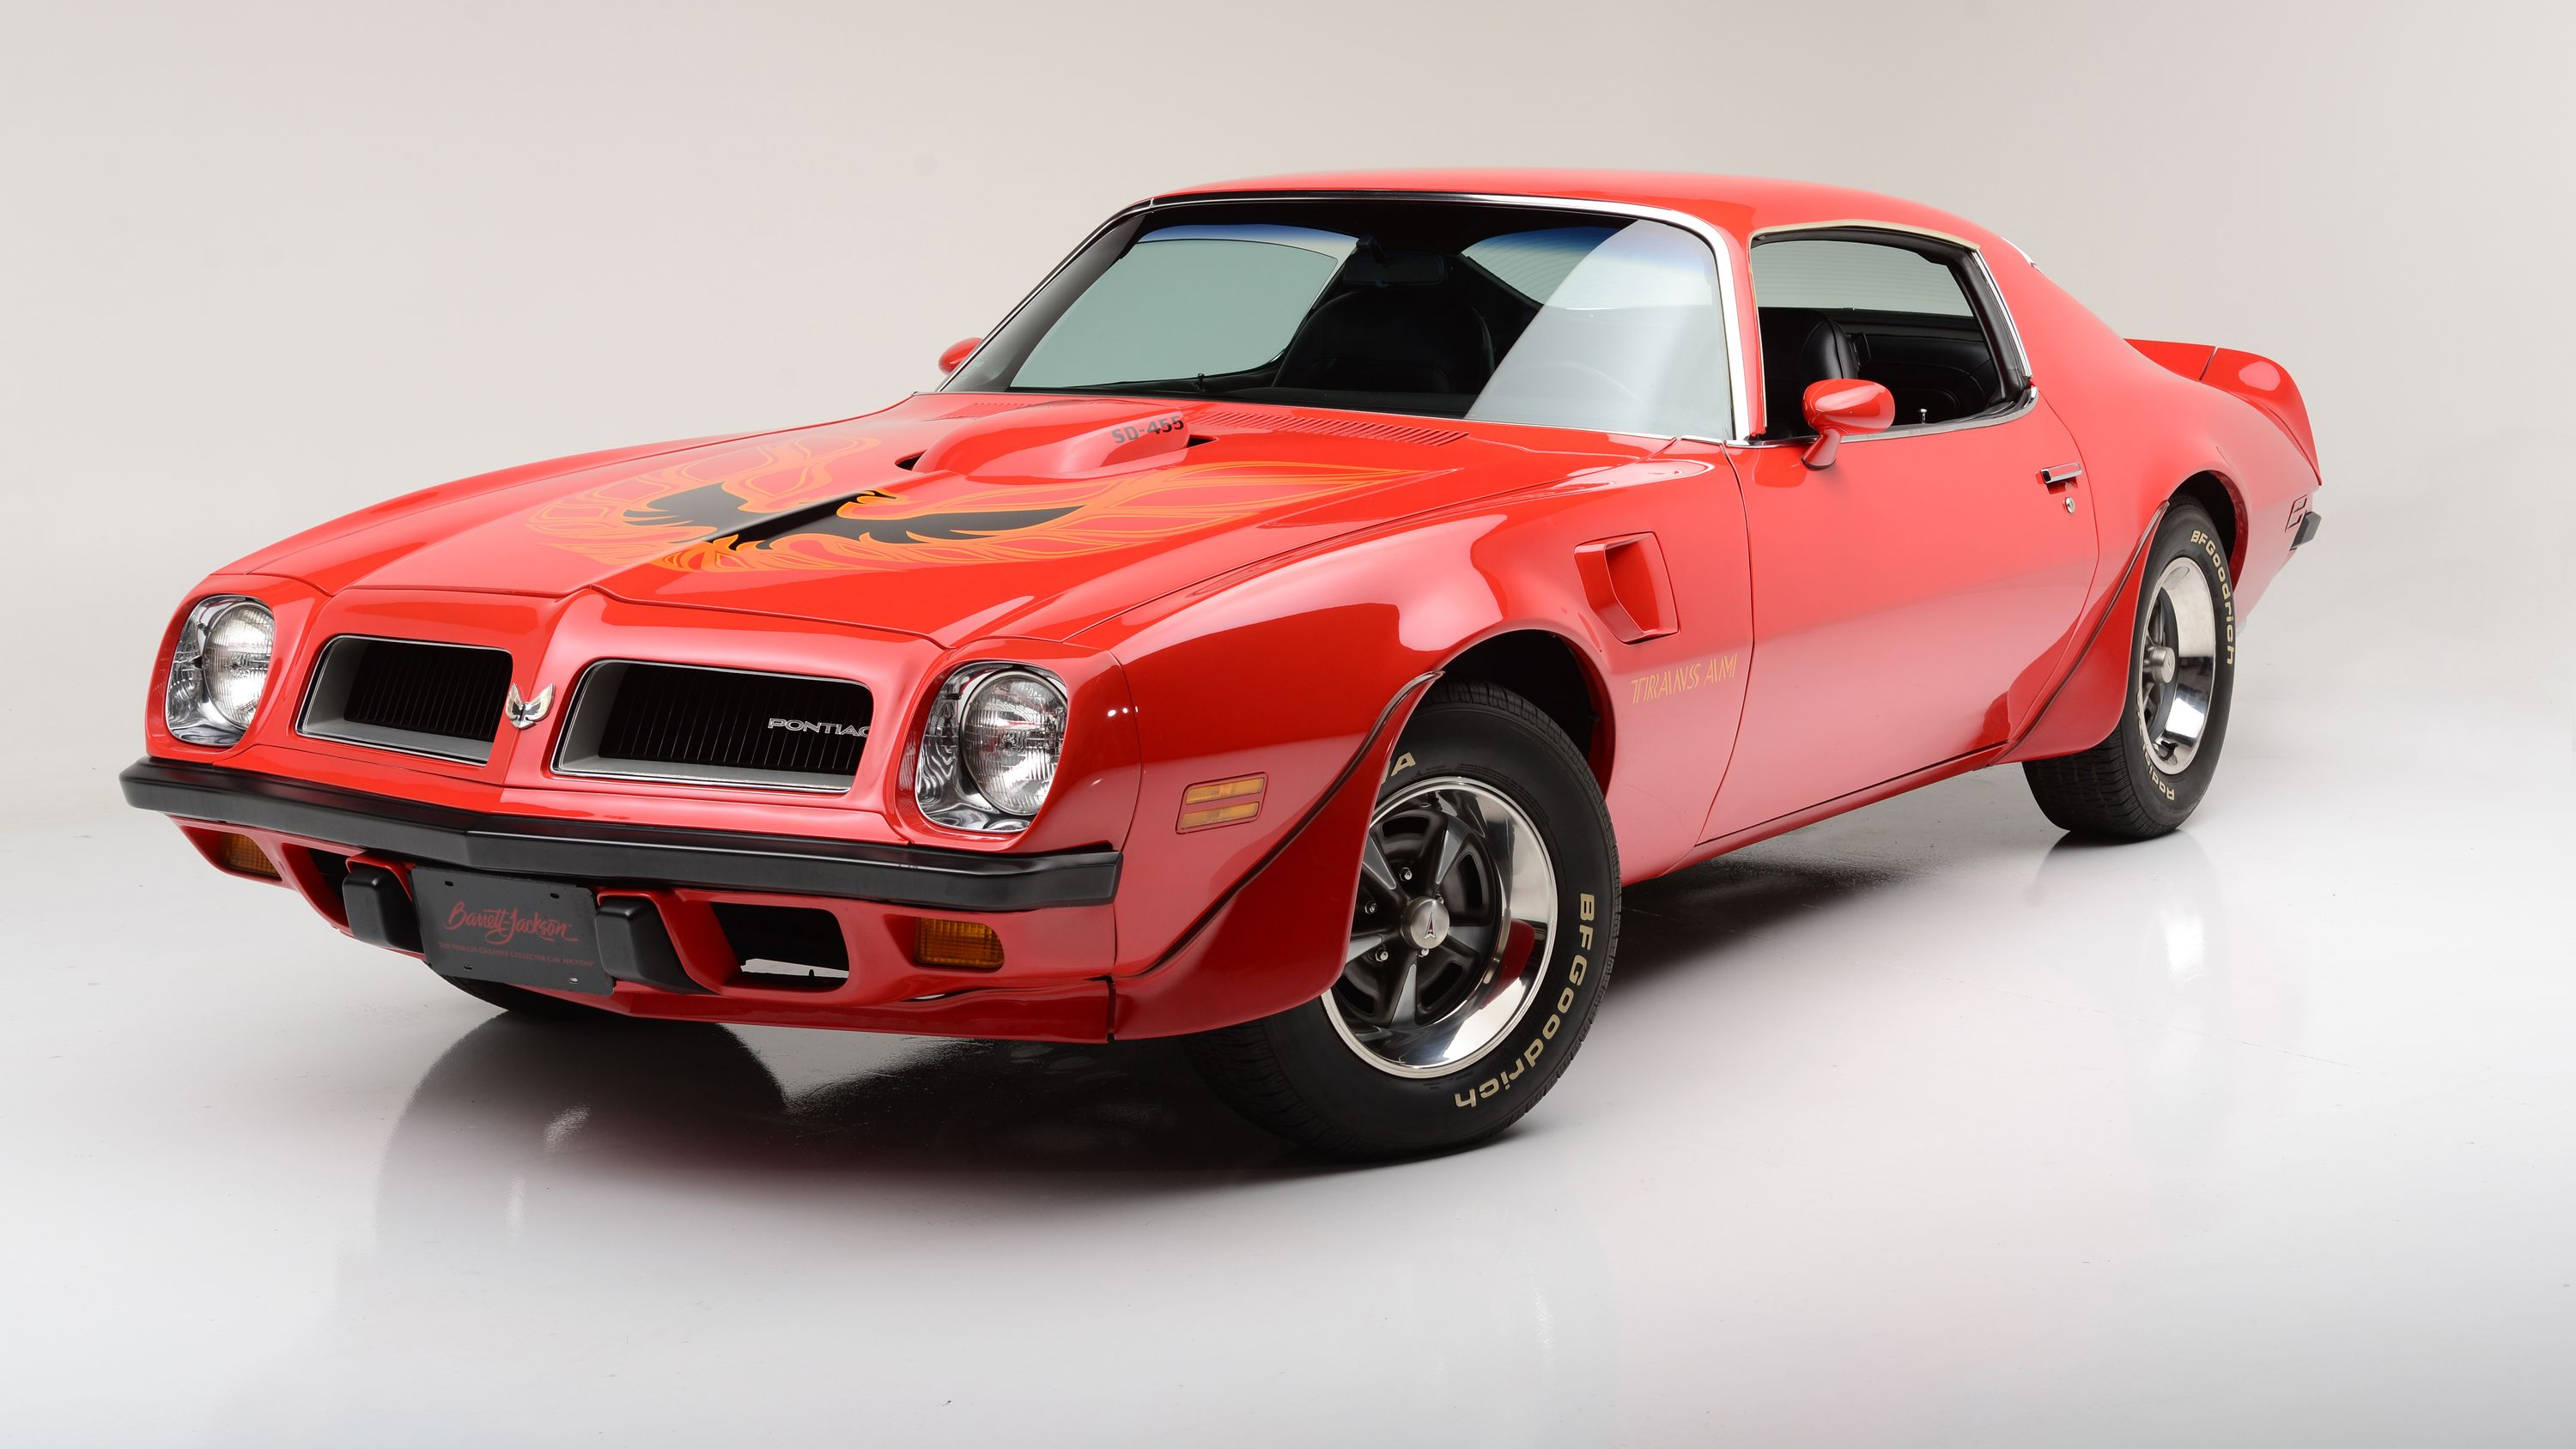 1974 Pontiac Trans Am Sd455 We Drive The Last Muscle Car